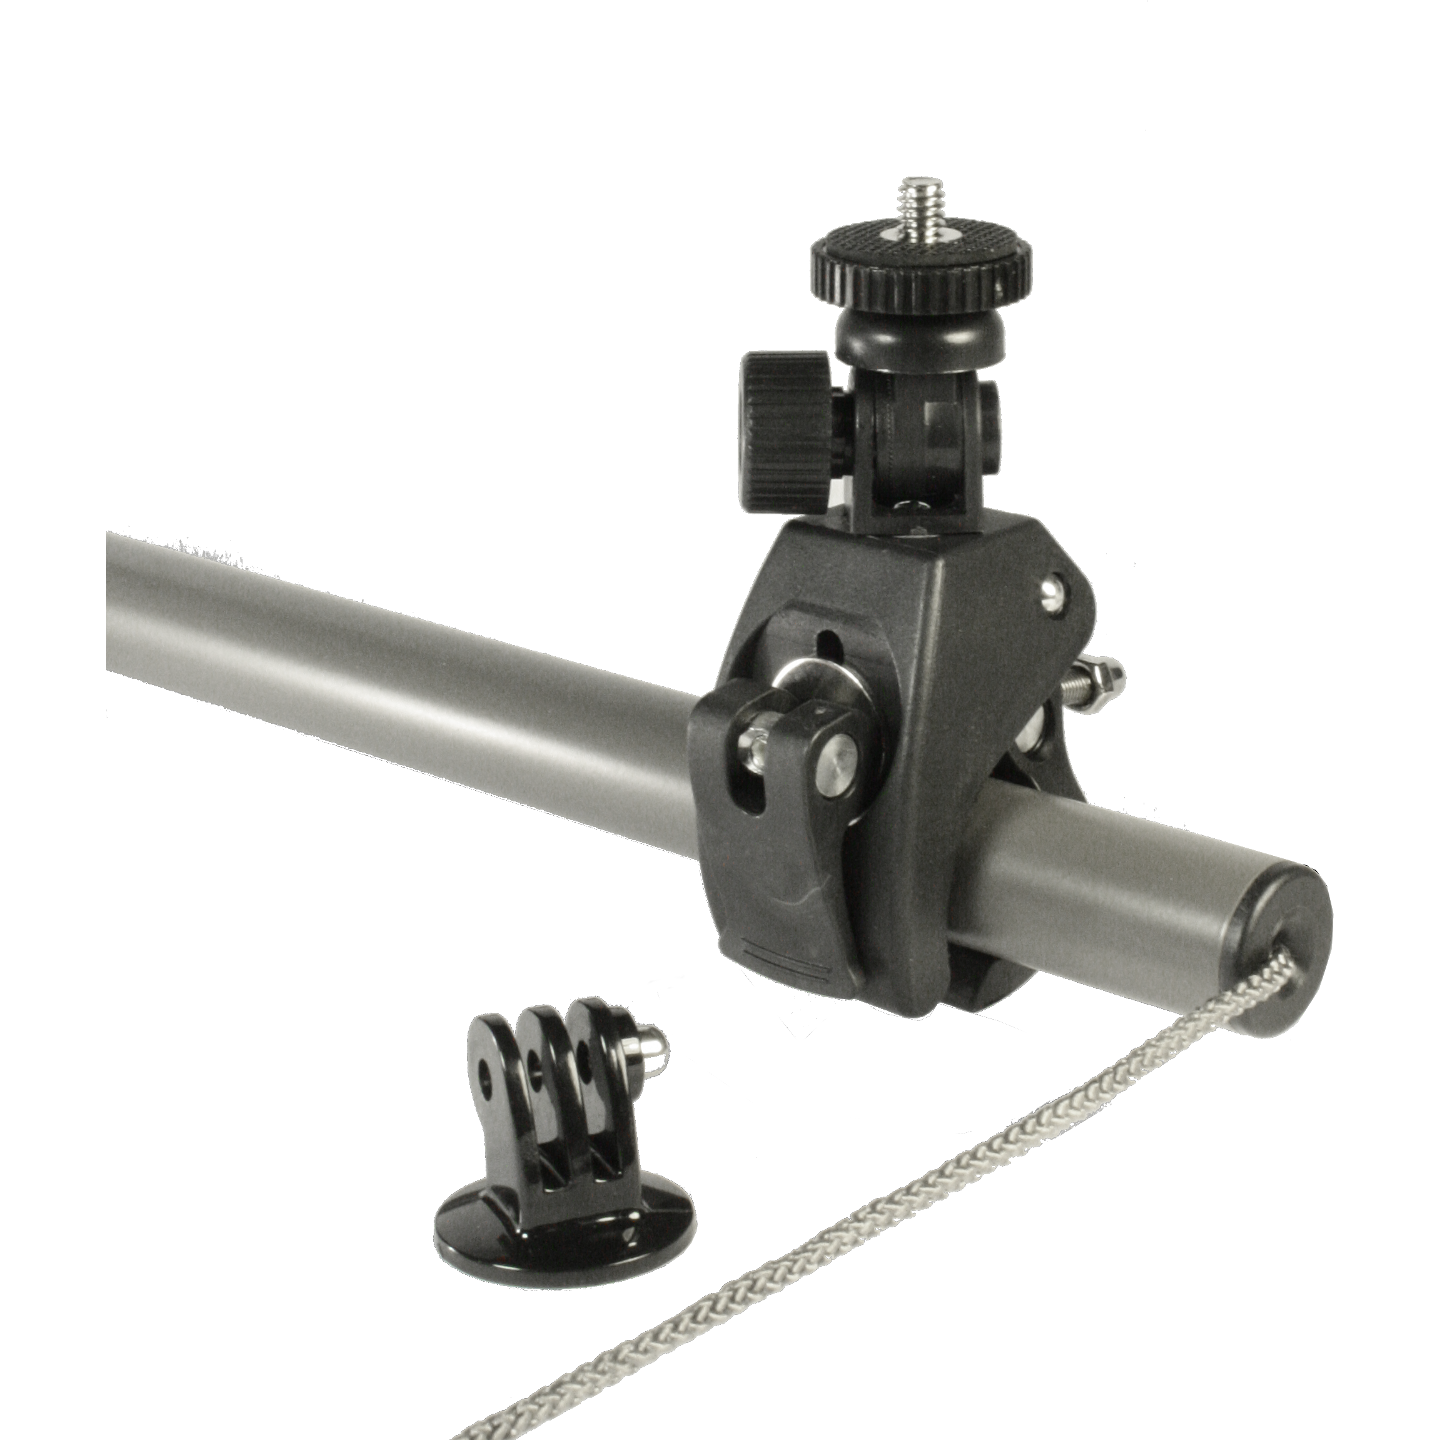 Camera/action camera mount for the SkyRest Overhead Shooting Rest